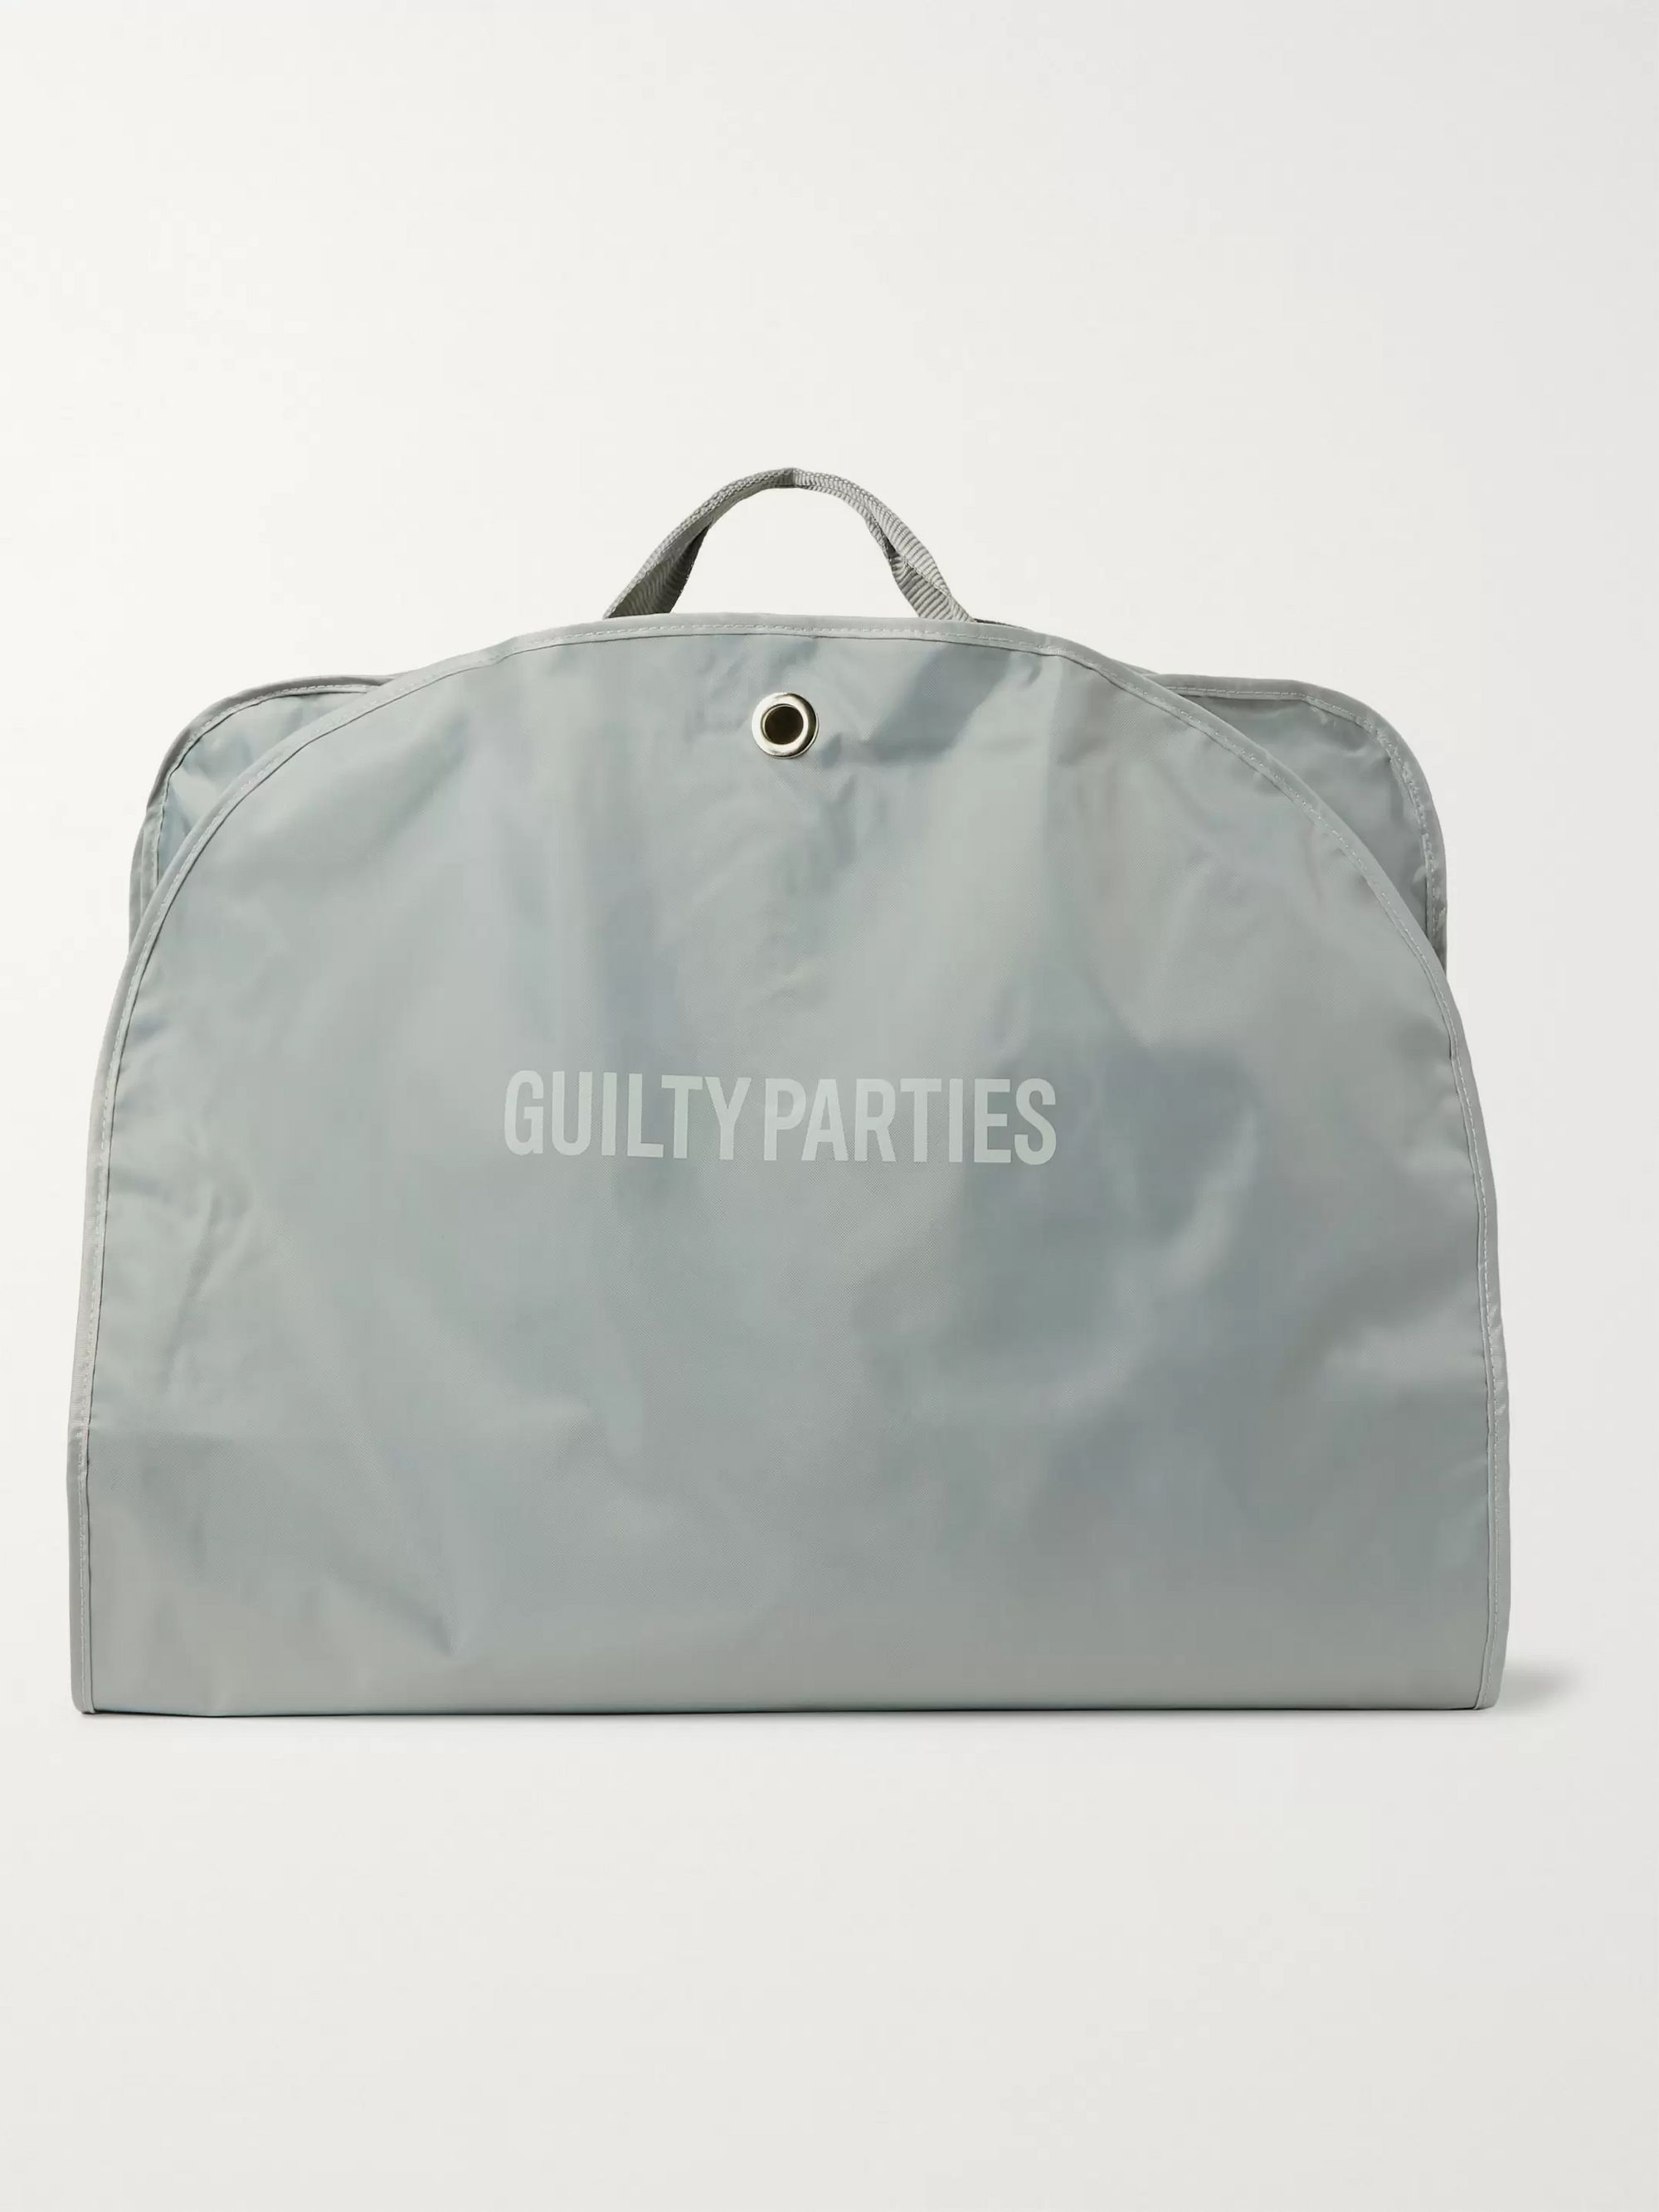 Wacko Maria Guilty Parties Printed Shell Garment Bag